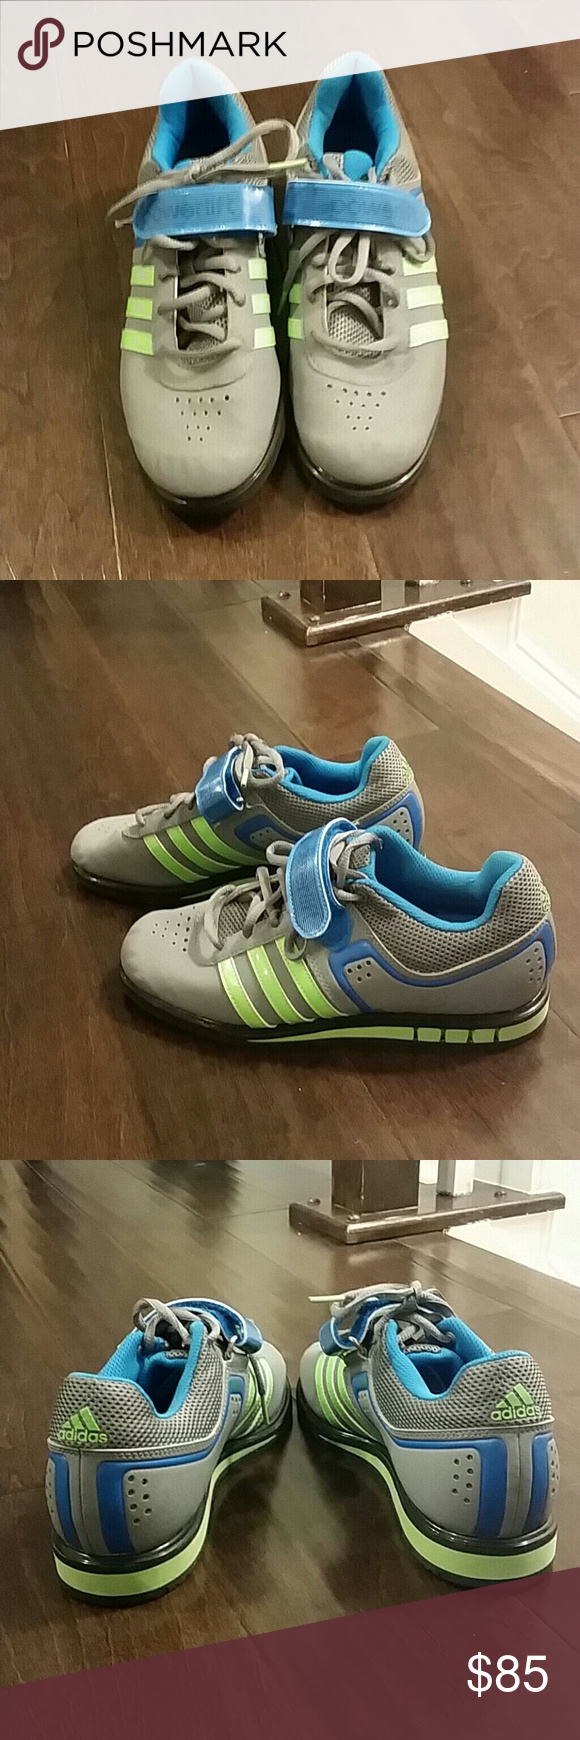 bfb98f6f89f0 Adidas powerlifting shoes Men s size 6.5